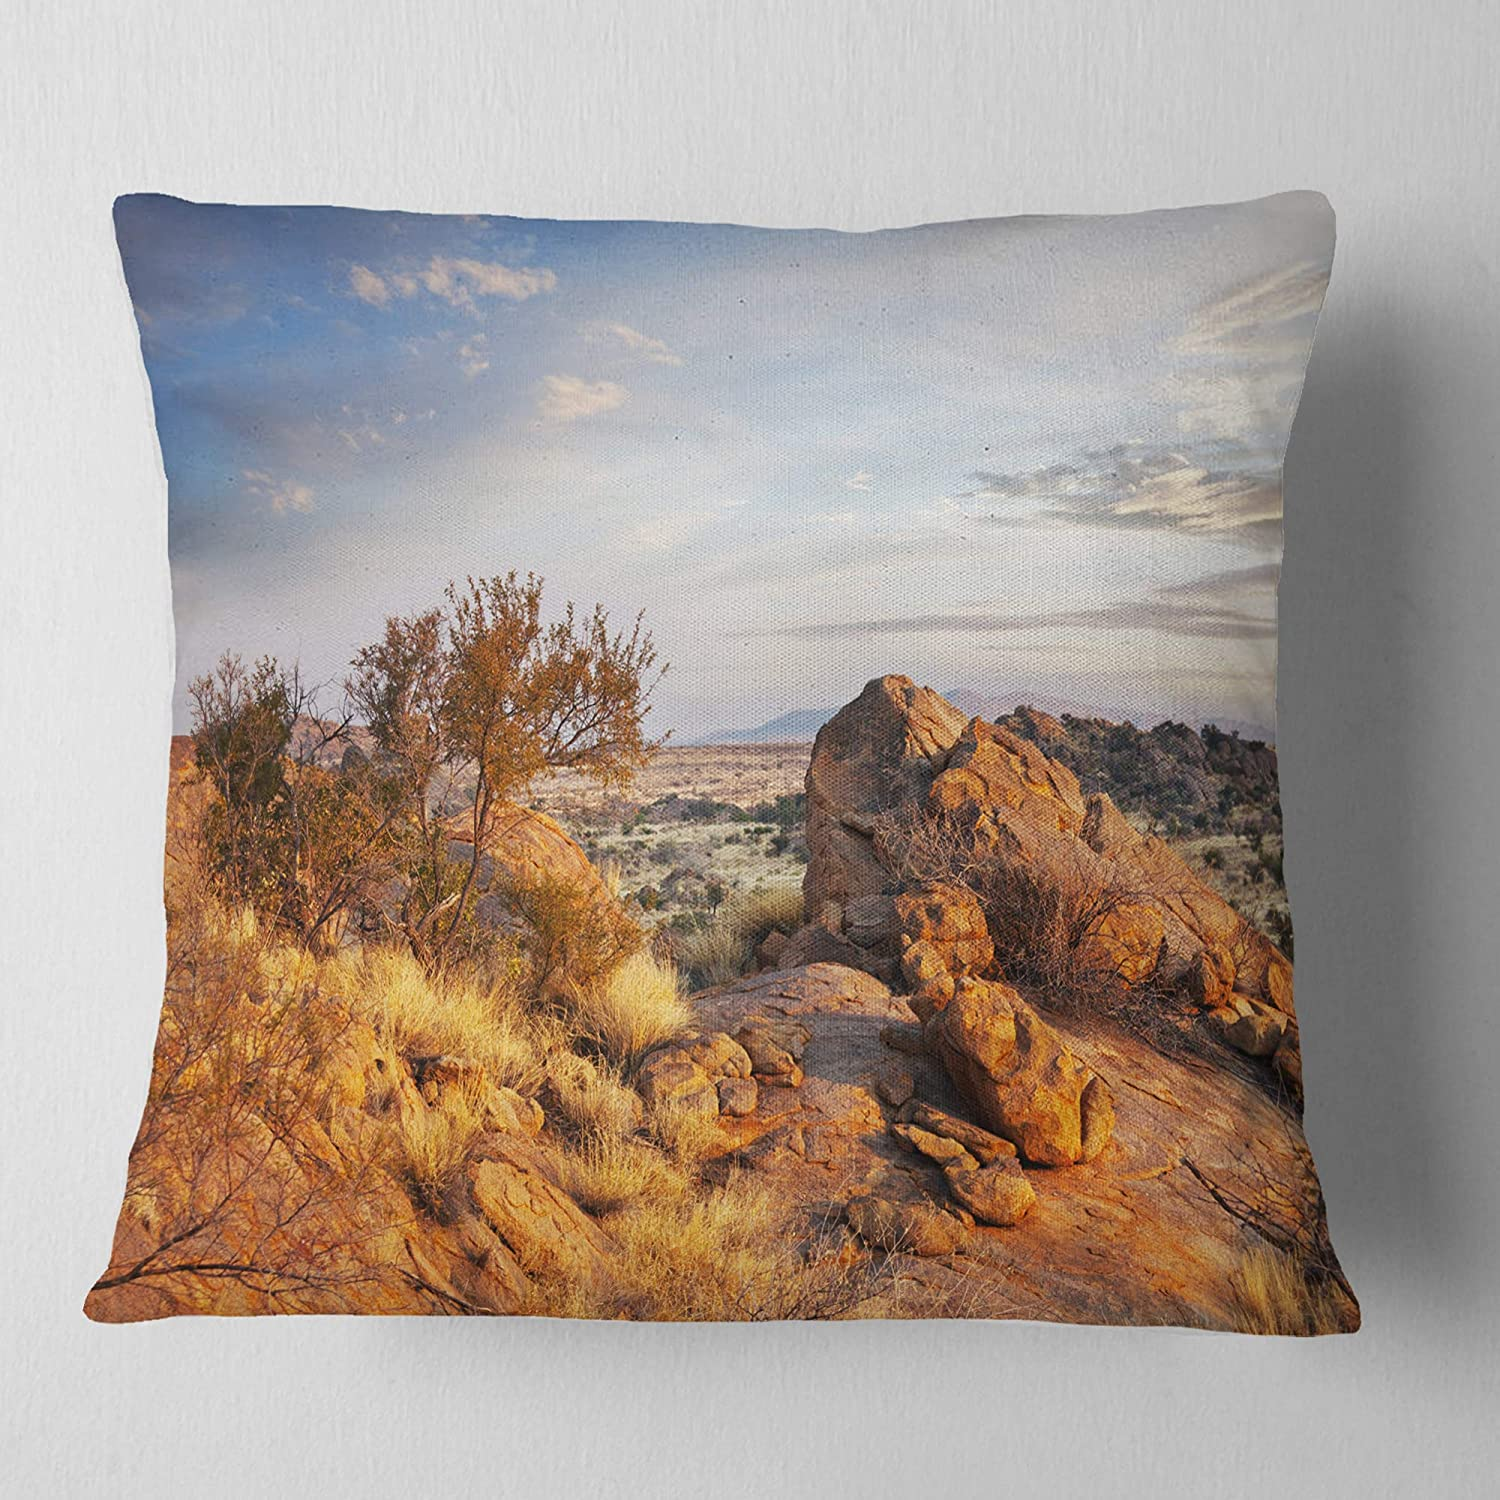 x 16 in Designart CU12582-16-16 Beautiful African Rocky Landscape Printed Cushion Cover for Living Room Insert Side Sofa Throw Pillow 16 in in